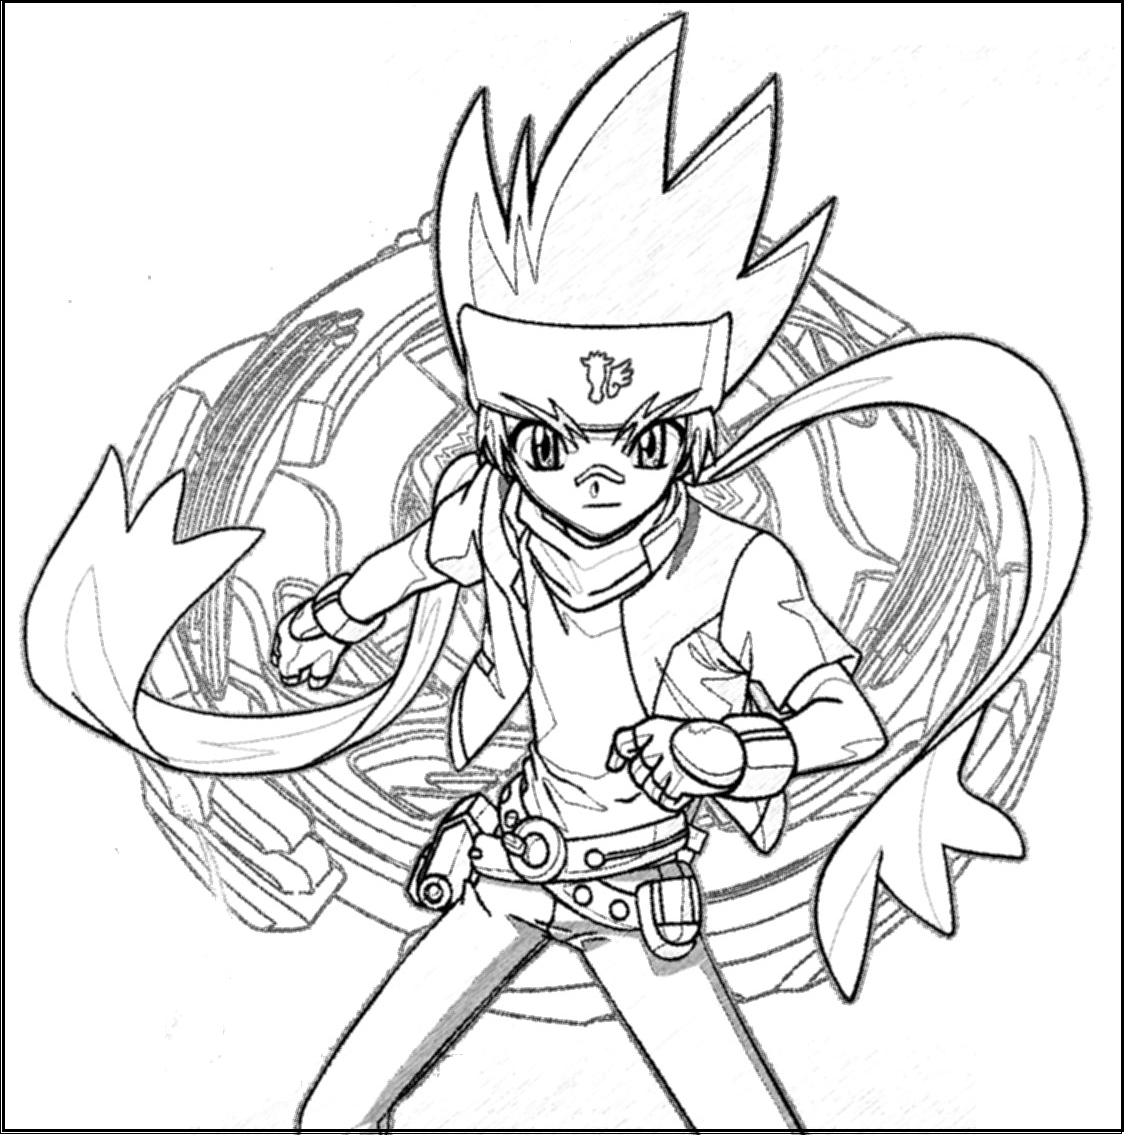 beyblade coloring pages for kids,printable,coloring pages